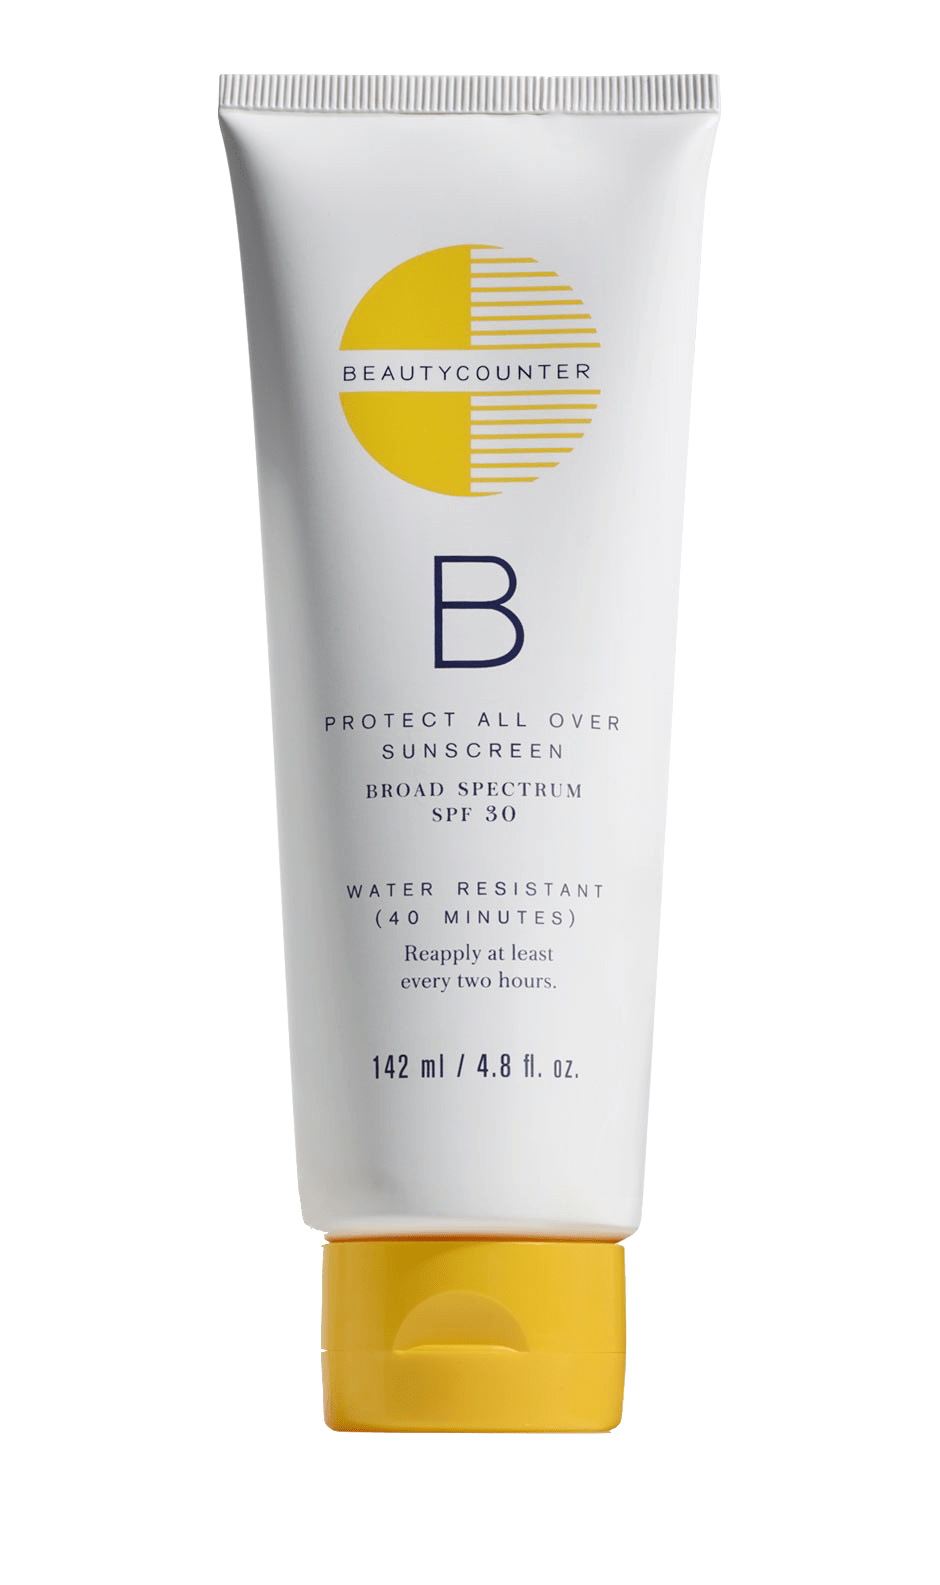 Beautycounter Sunscreen Review